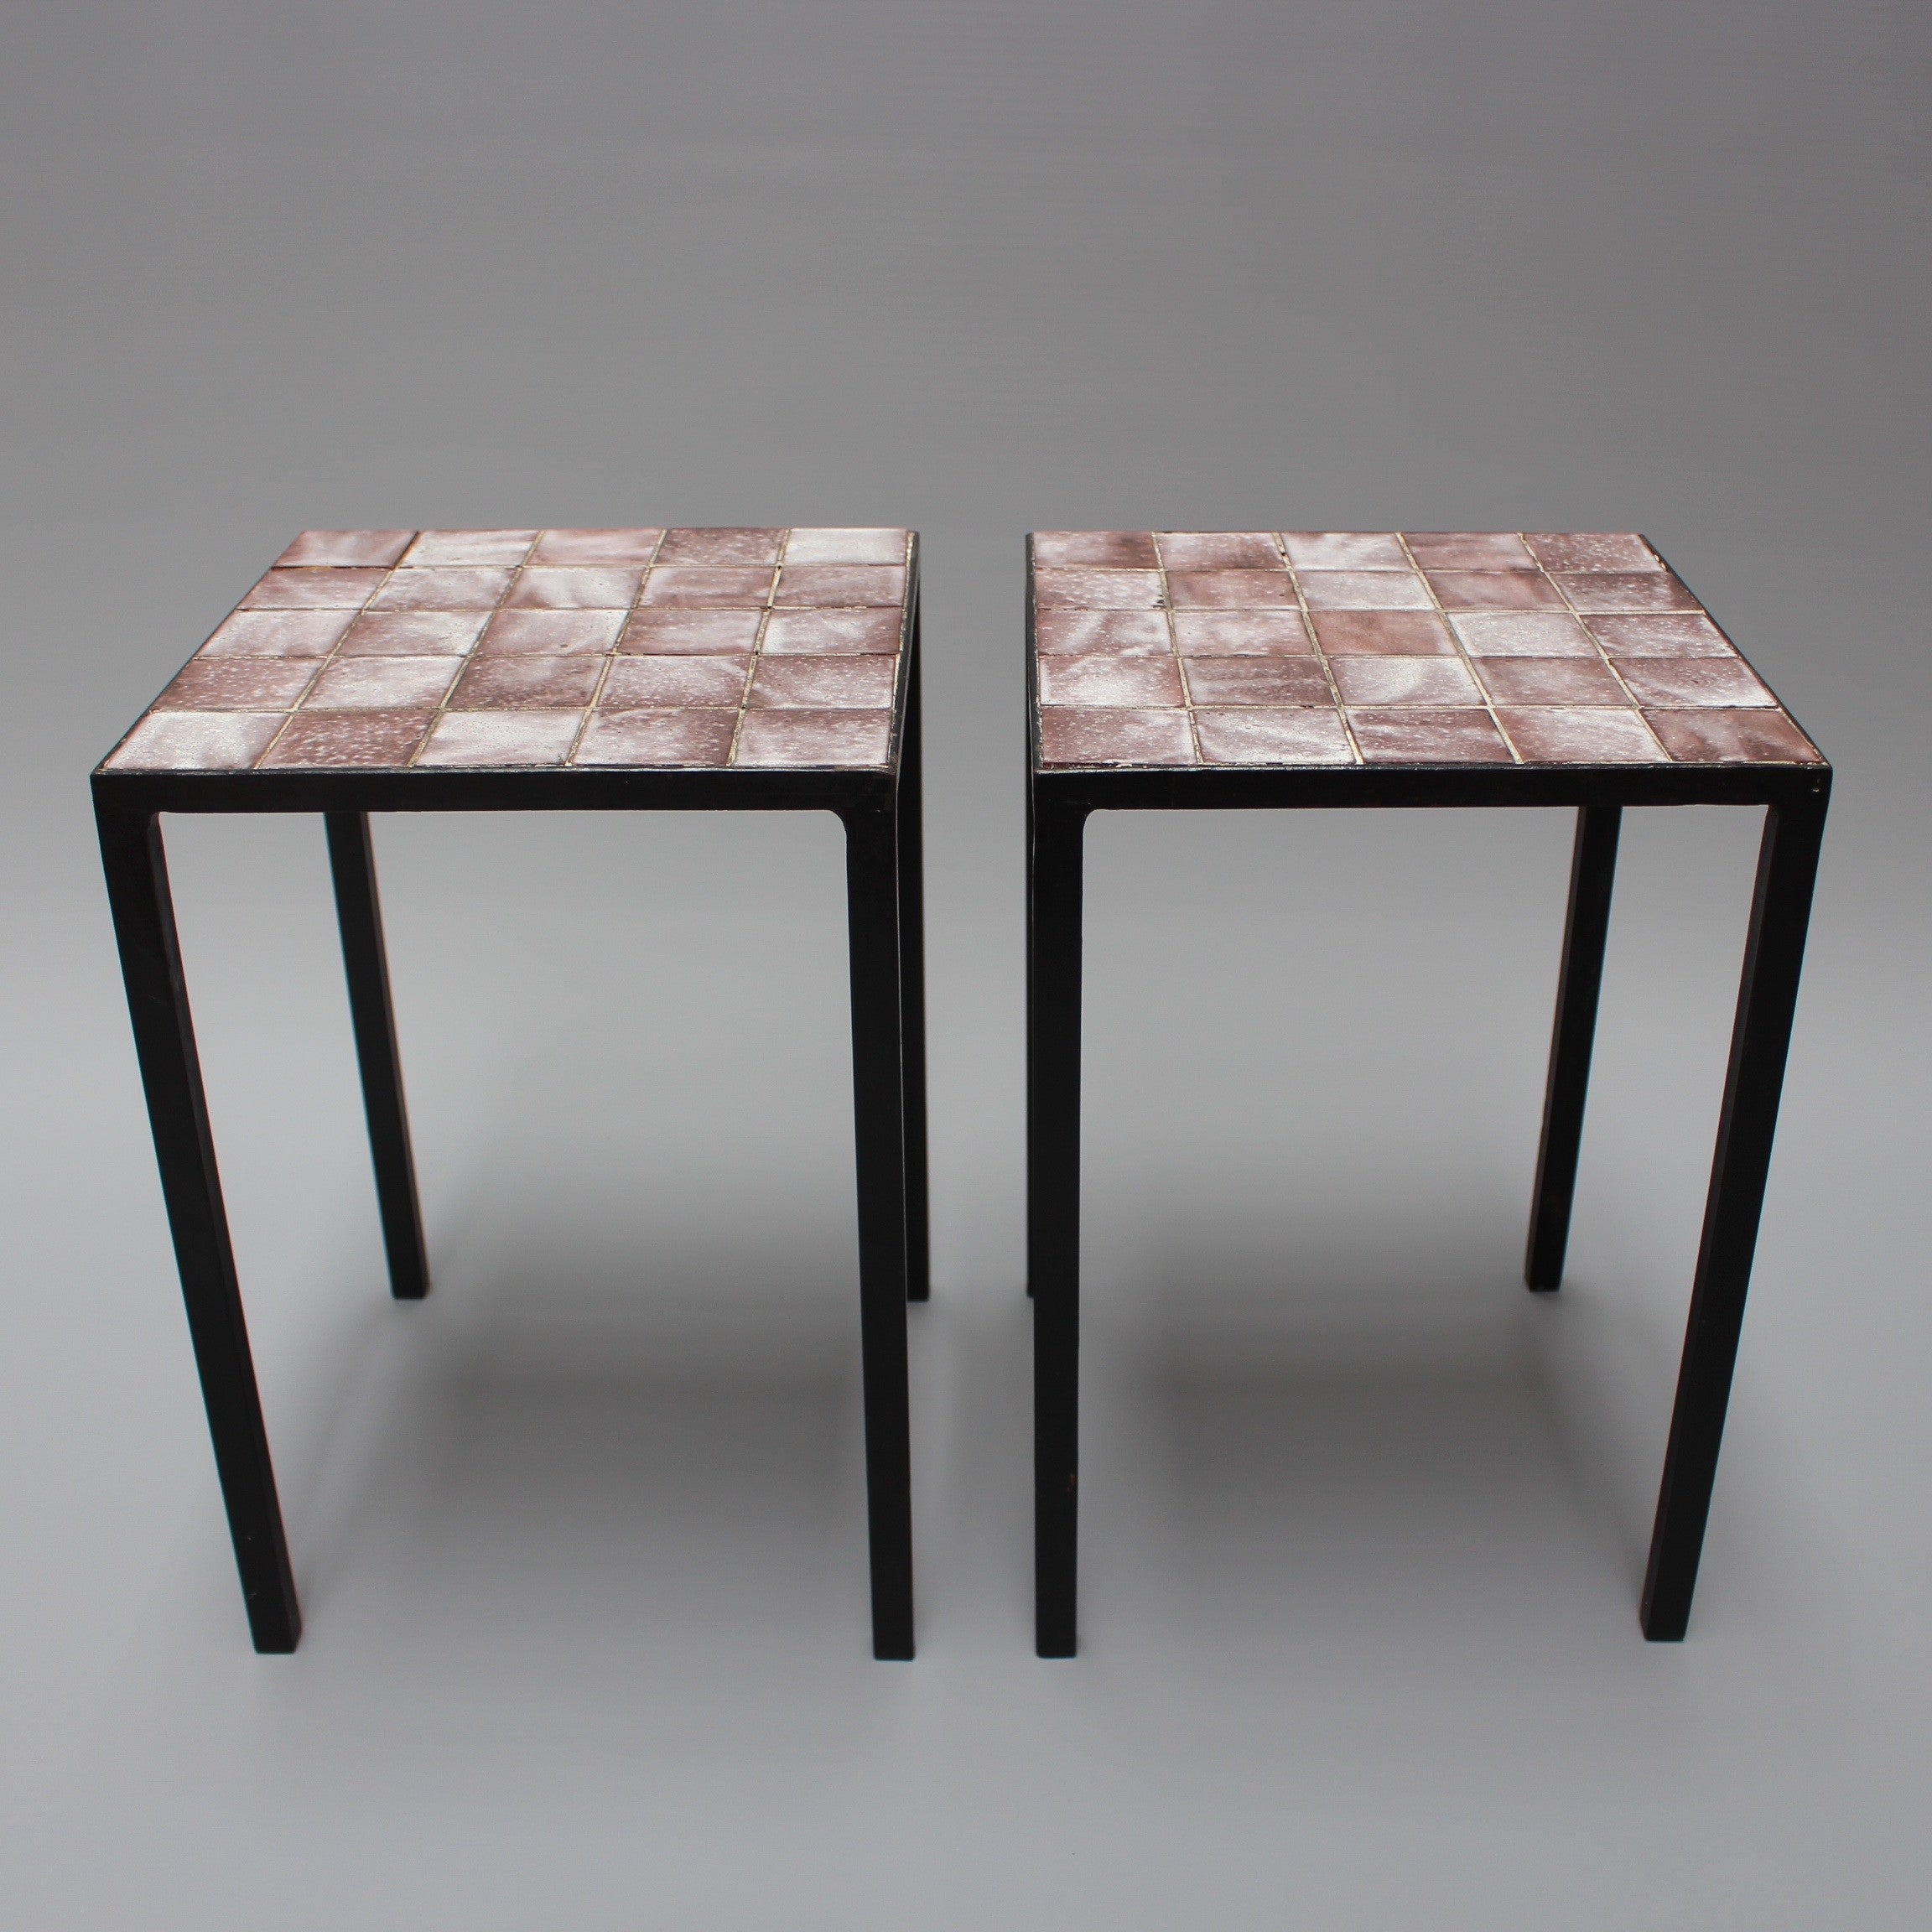 Two Side Tables by Mado Jolain (c. 1950-1960)